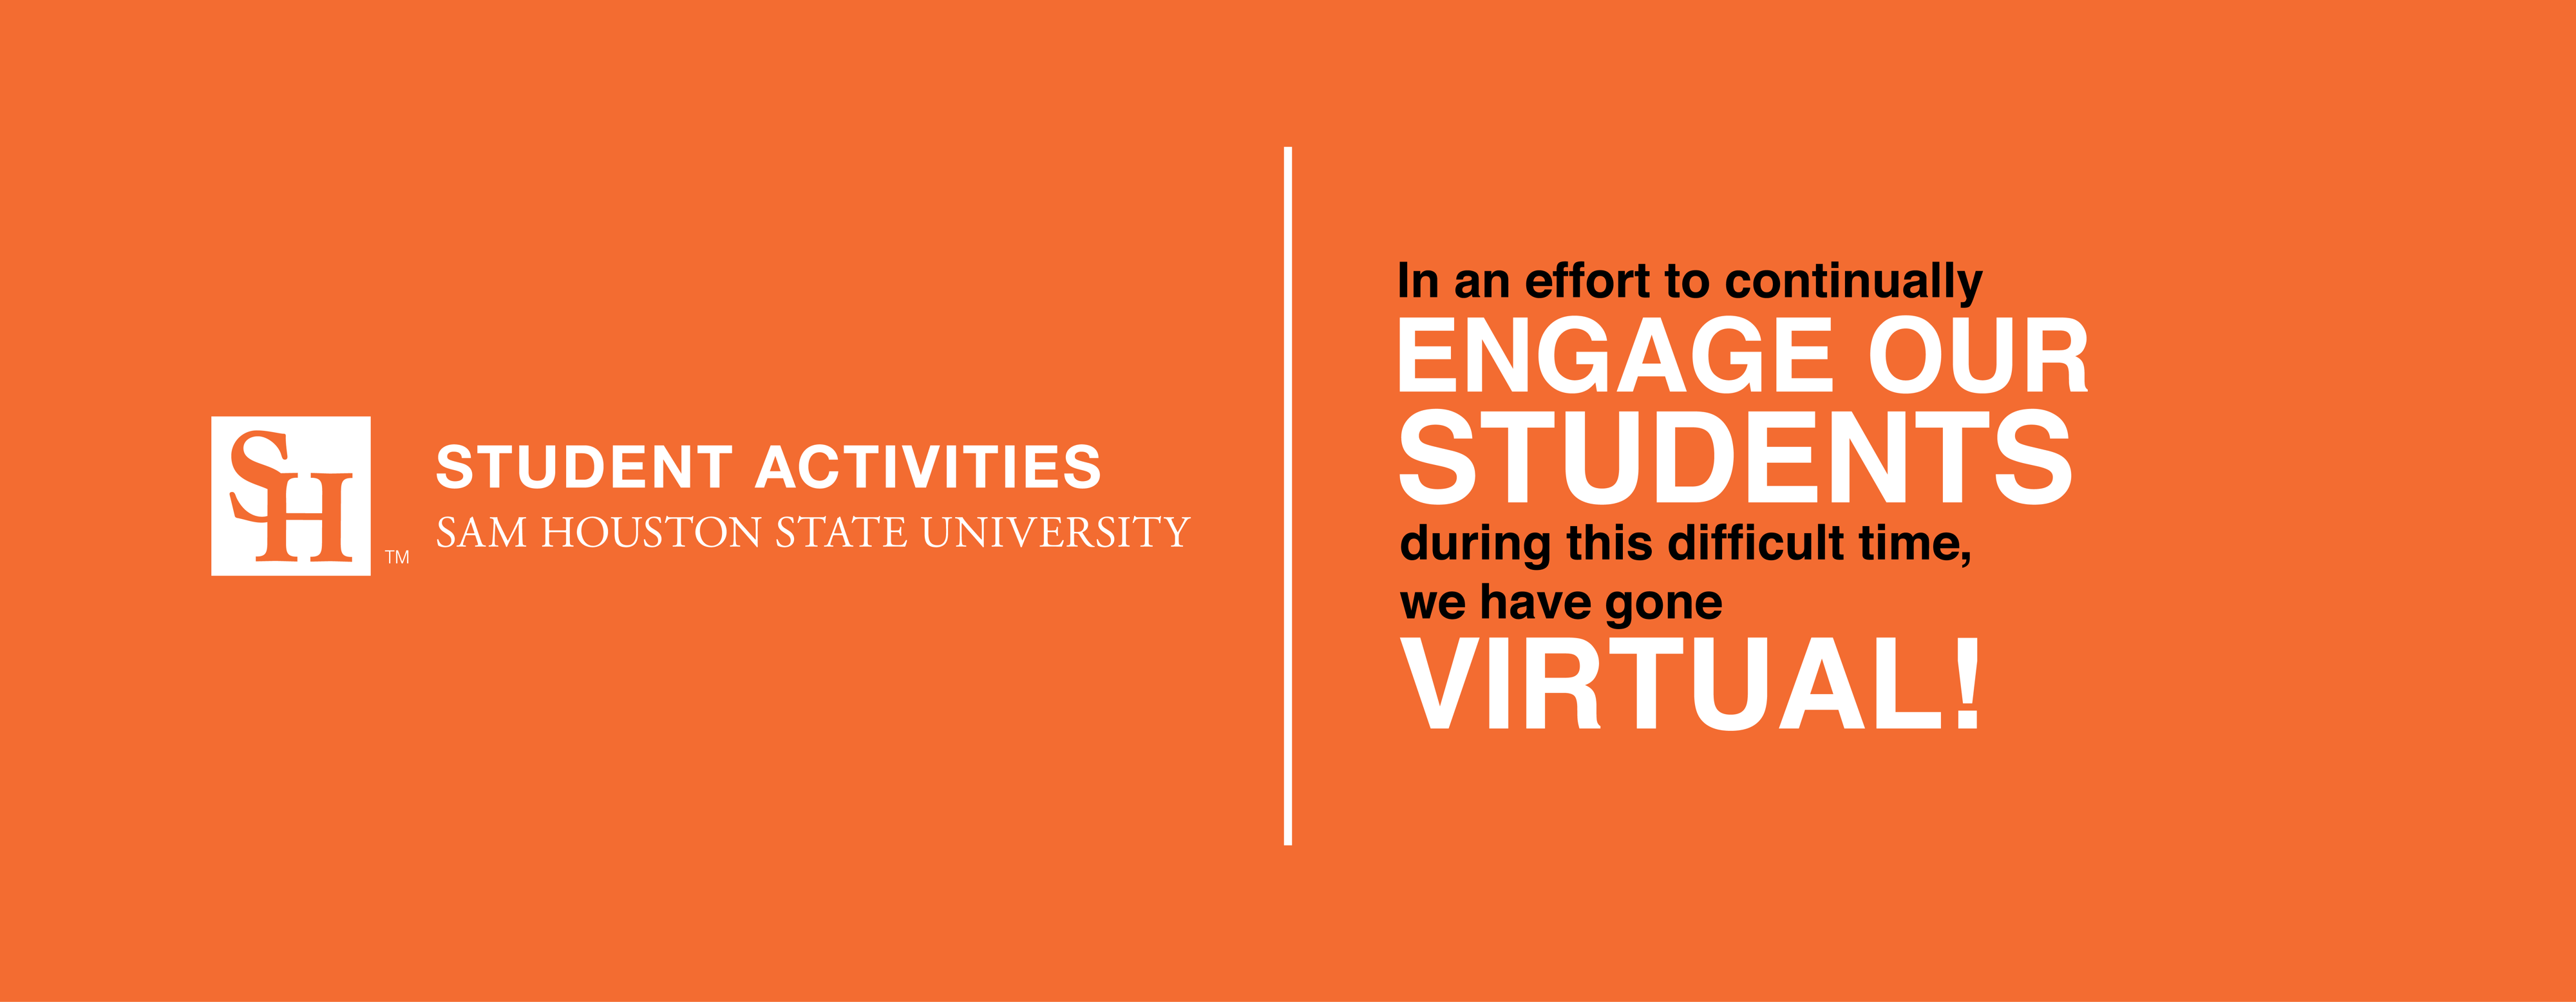 In An effort to continually engage our students during this difficult time, we have gone virtual!